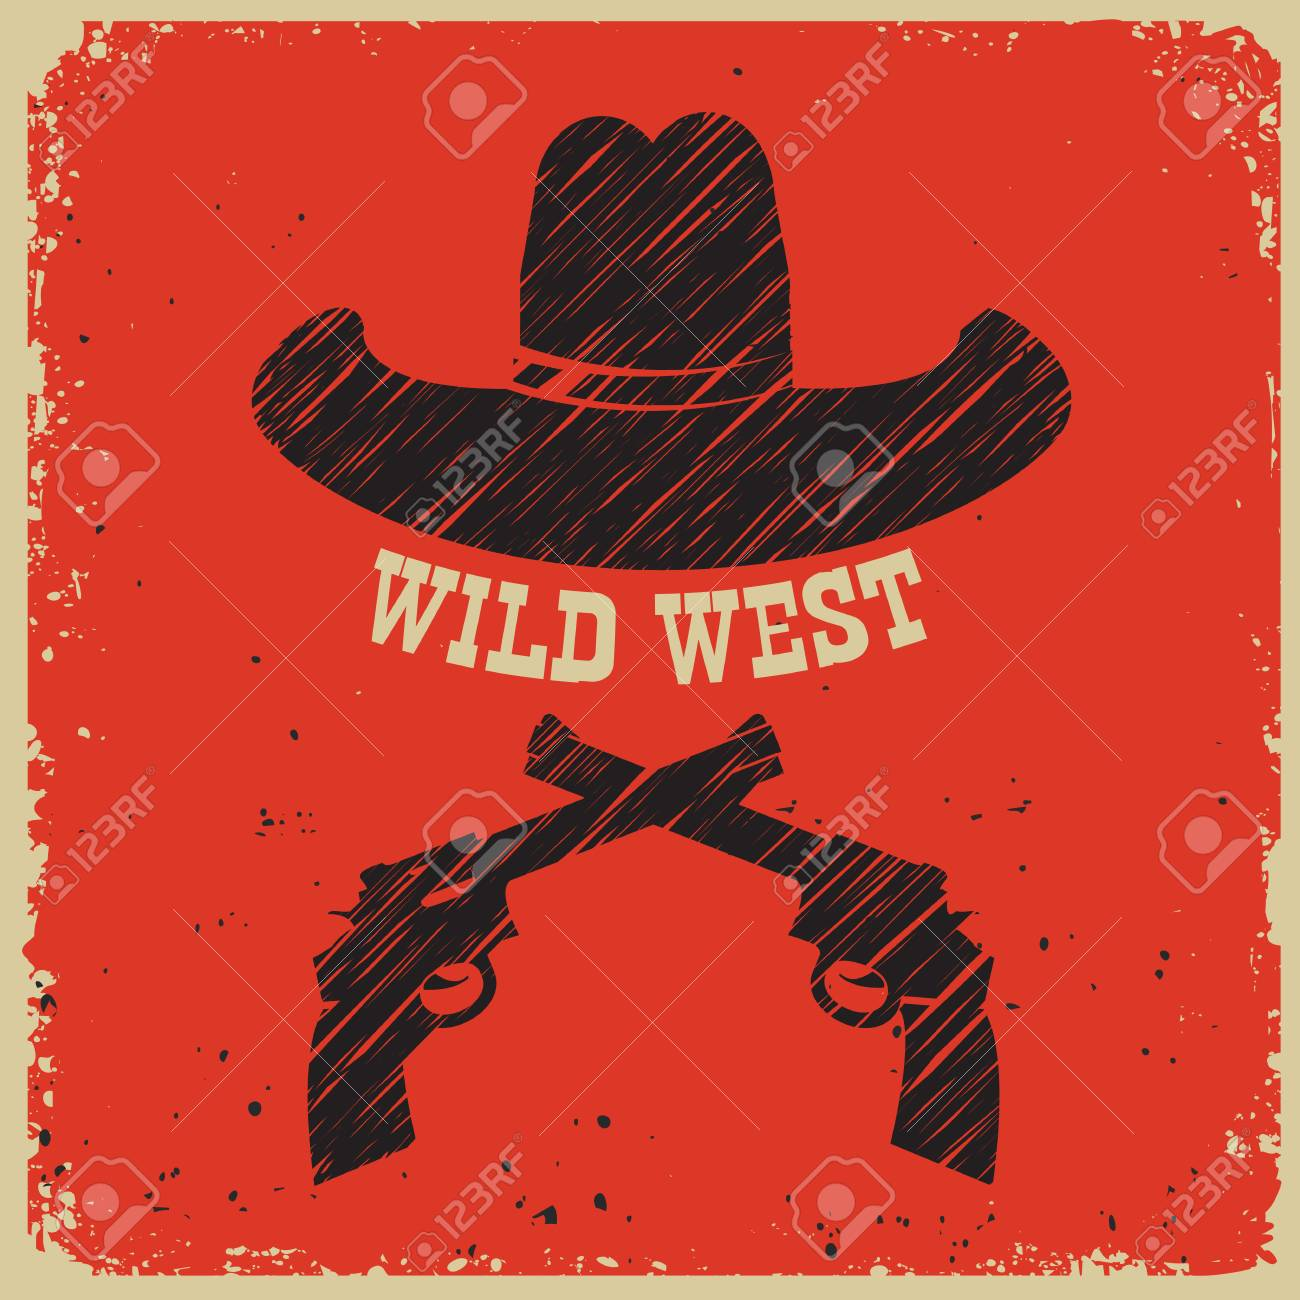 5716d8e9de9 Vector - Western poster background with cowboy hat and guns on red paper